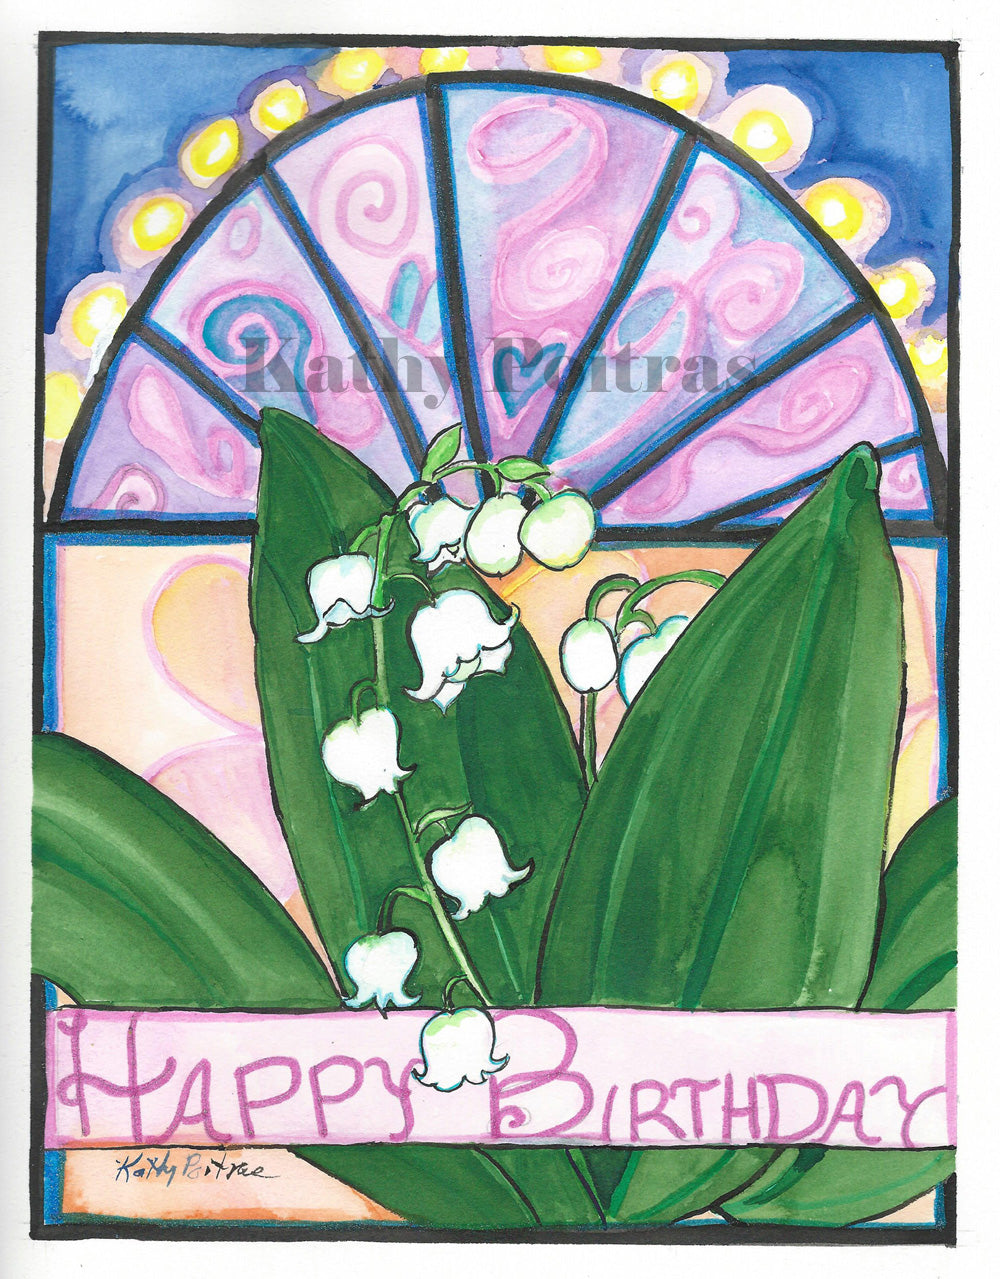 Hand made birthday card, in the naïve folk art style of Kathy Poitras. Inspired by the May birth  flower of the month, Lily of the valley.   Lily of the valley with a stain glass inspired background.  With an impression of lights across an arch at the top.  A celebratory ribbon that says